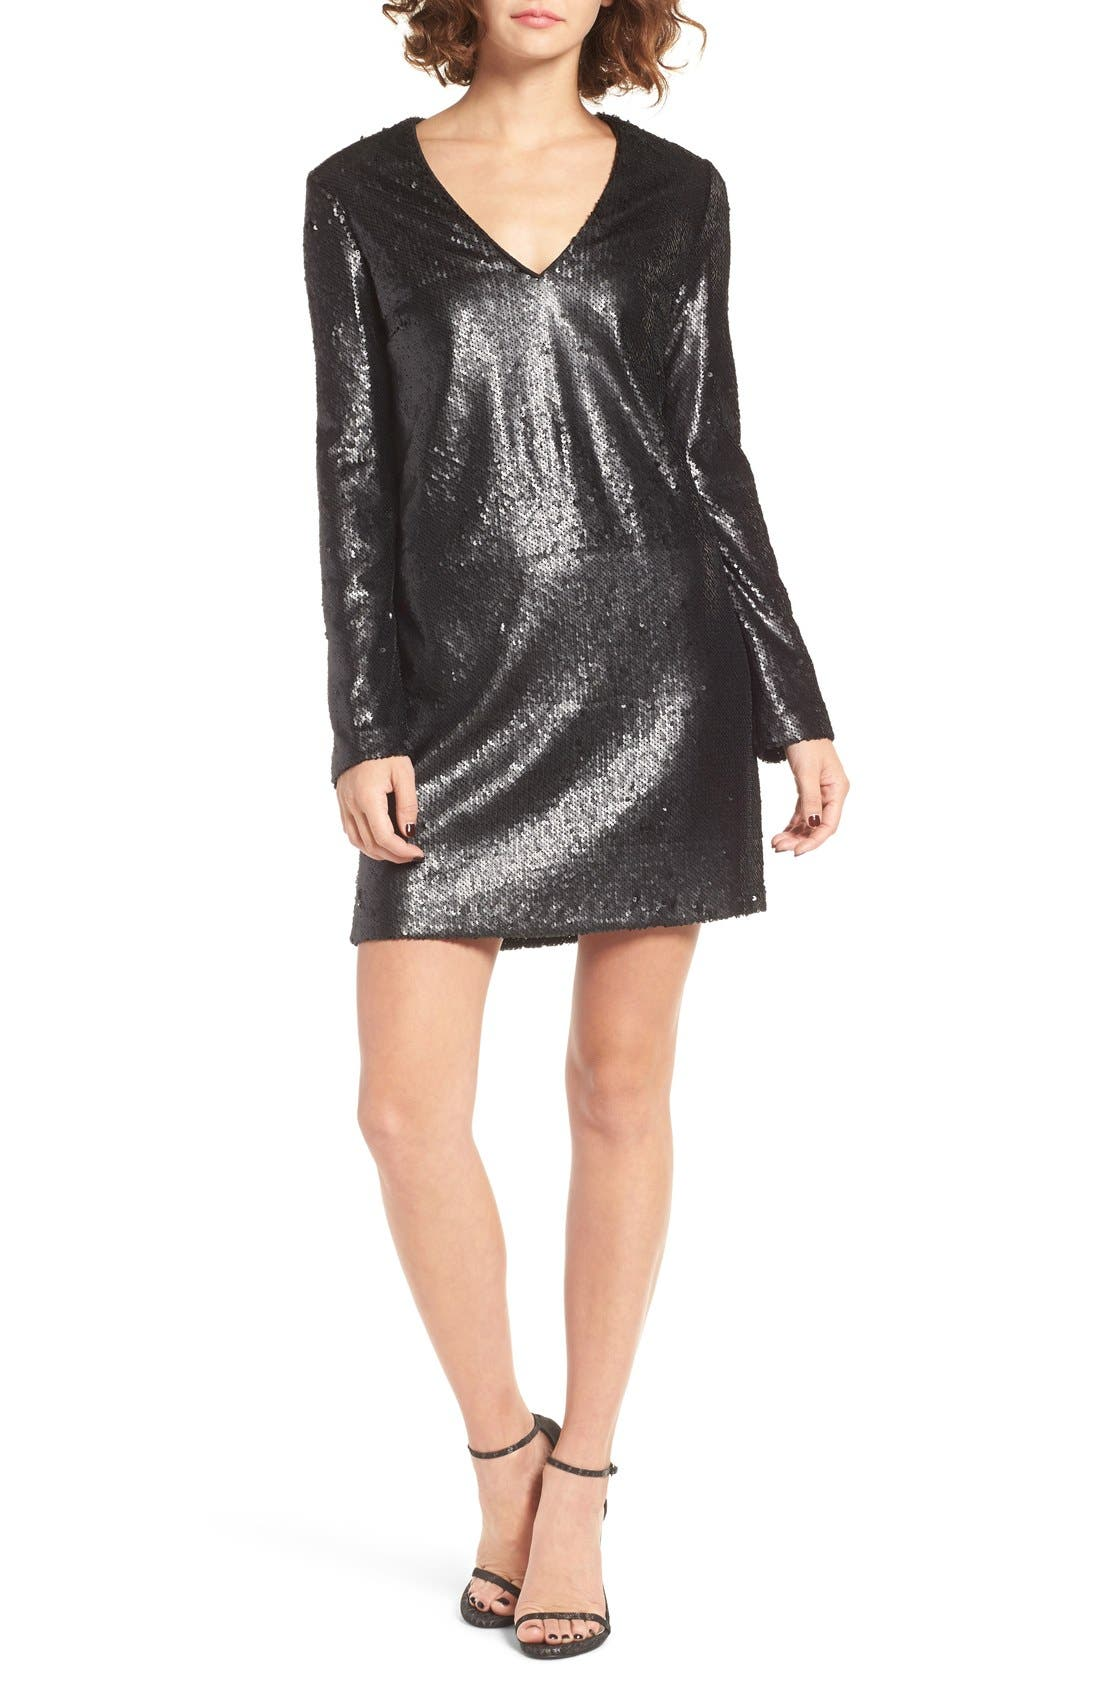 Skyline Sequin Dress,                             Main thumbnail 1, color,                             001